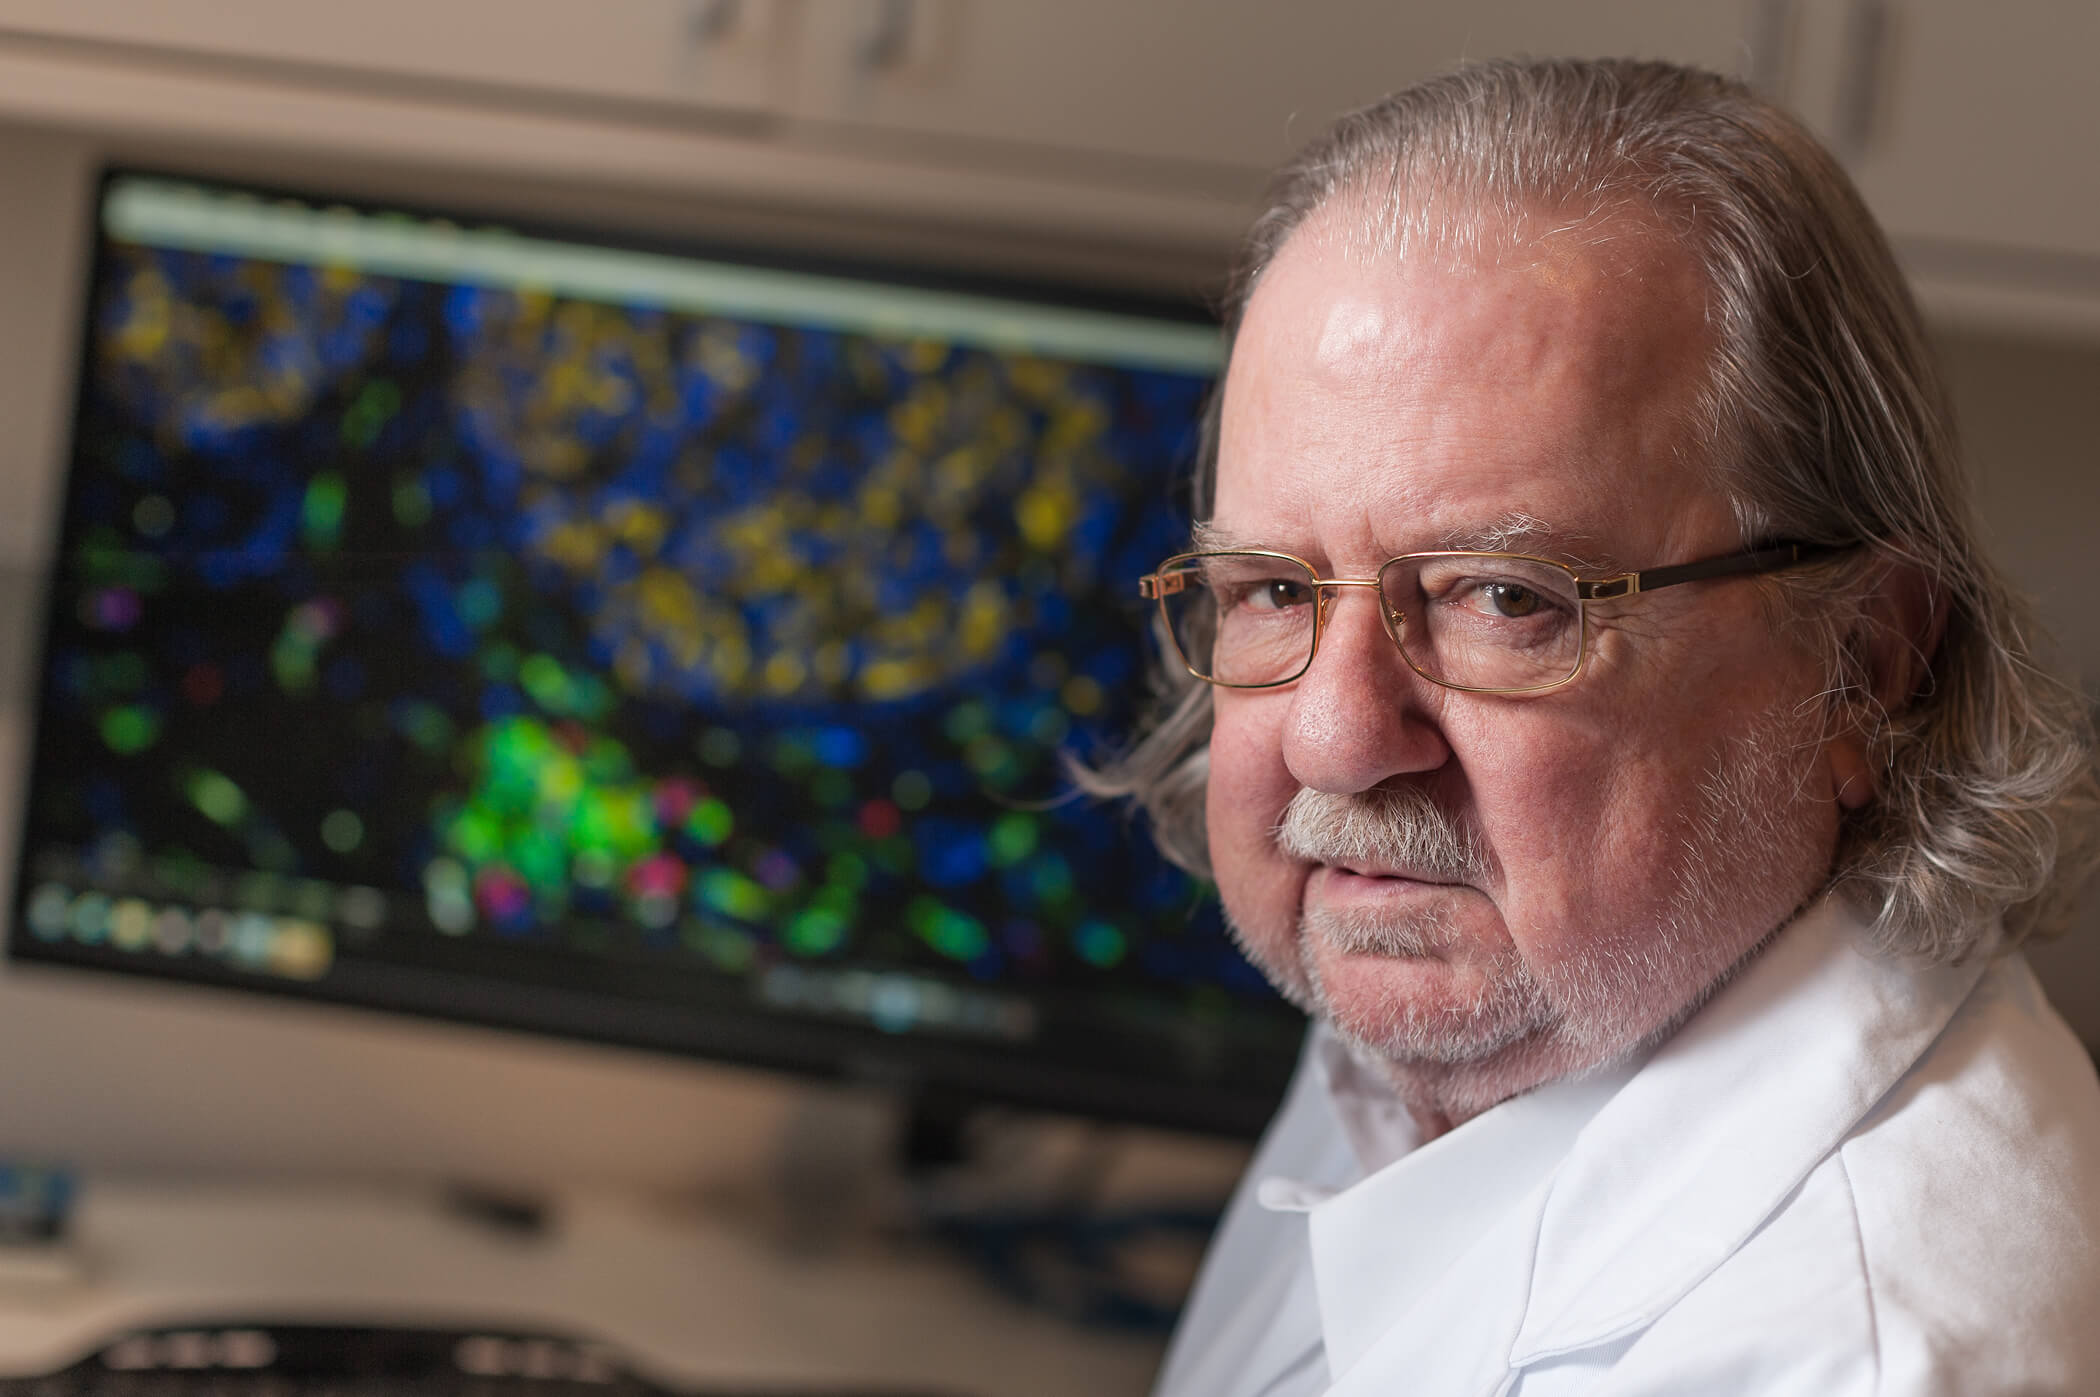 James P. Allison, Ph.D., in the laboratory where he studies T cells. (Courtesy of MD Anderson)